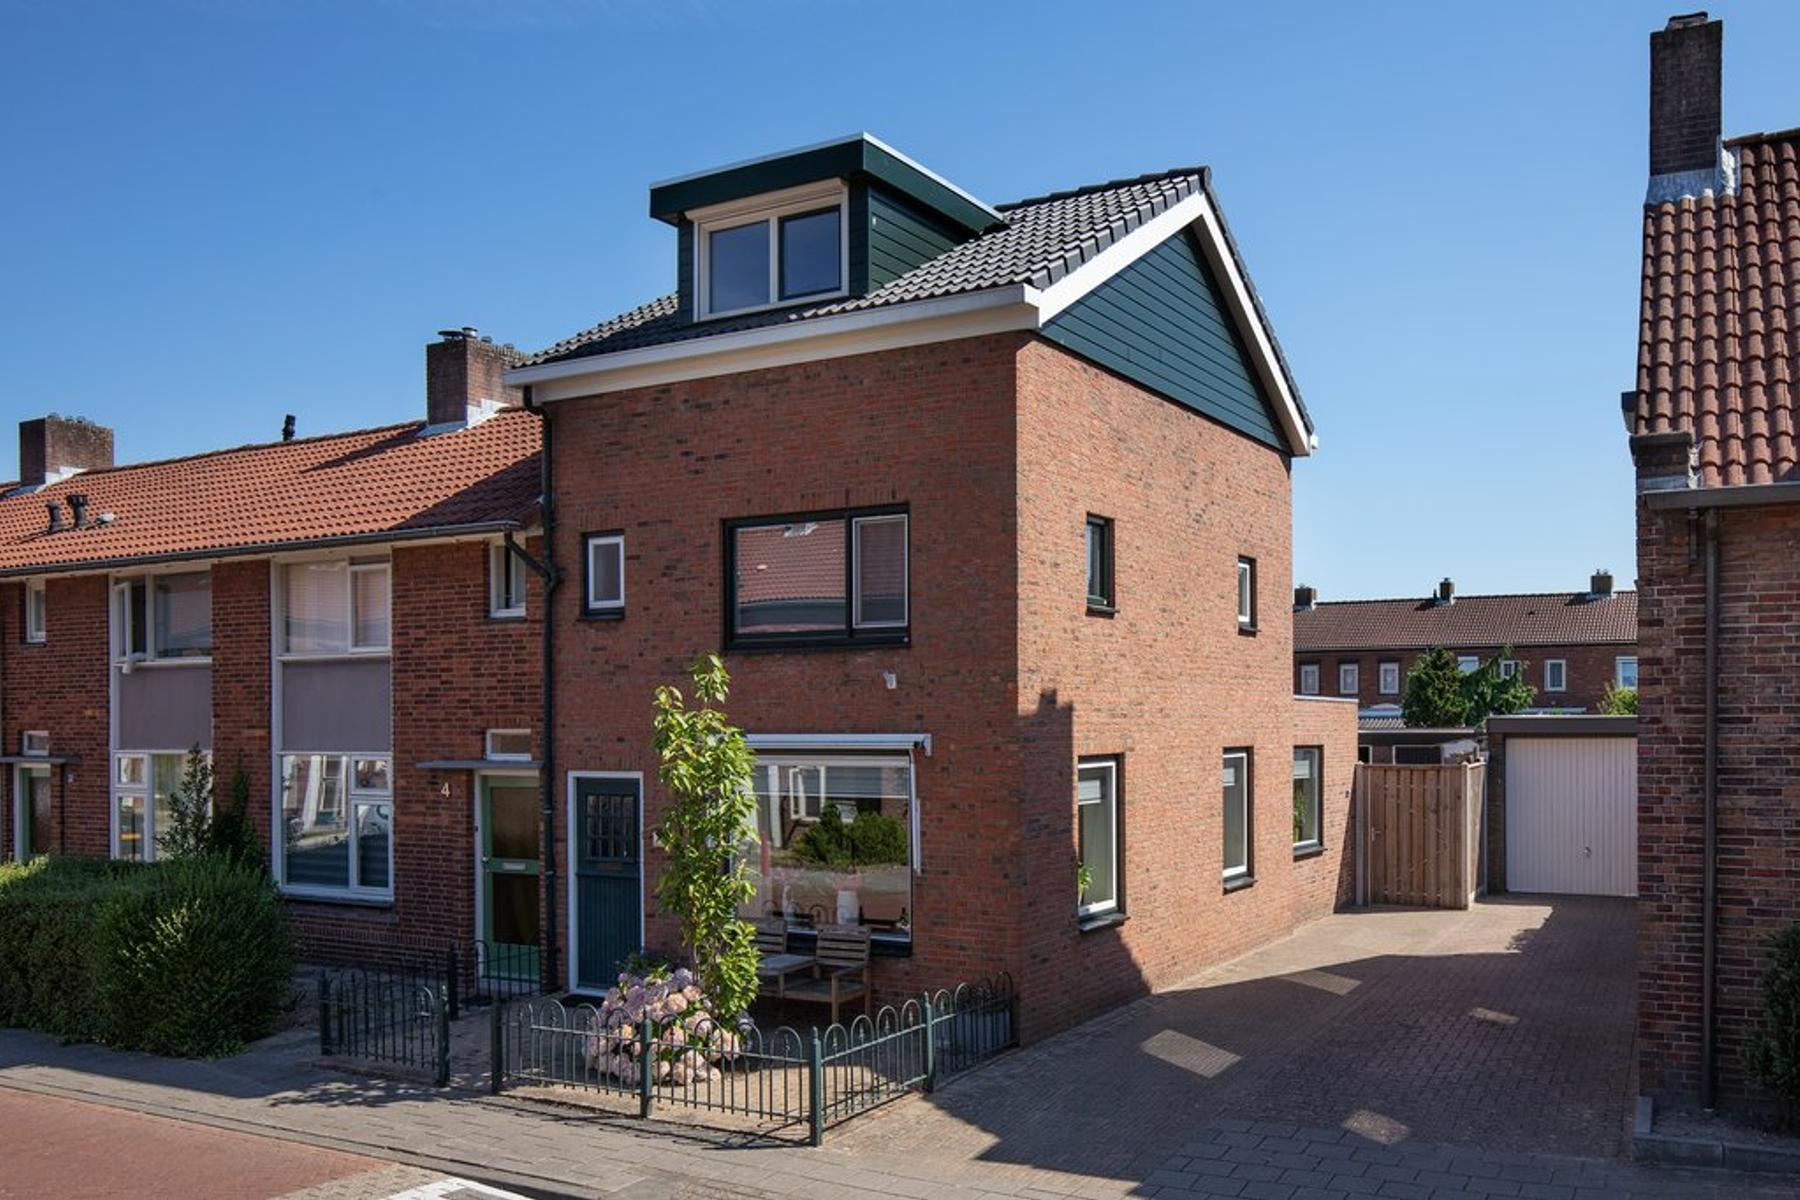 Norbartstraat 2 in Etten-Leur 4872 TH